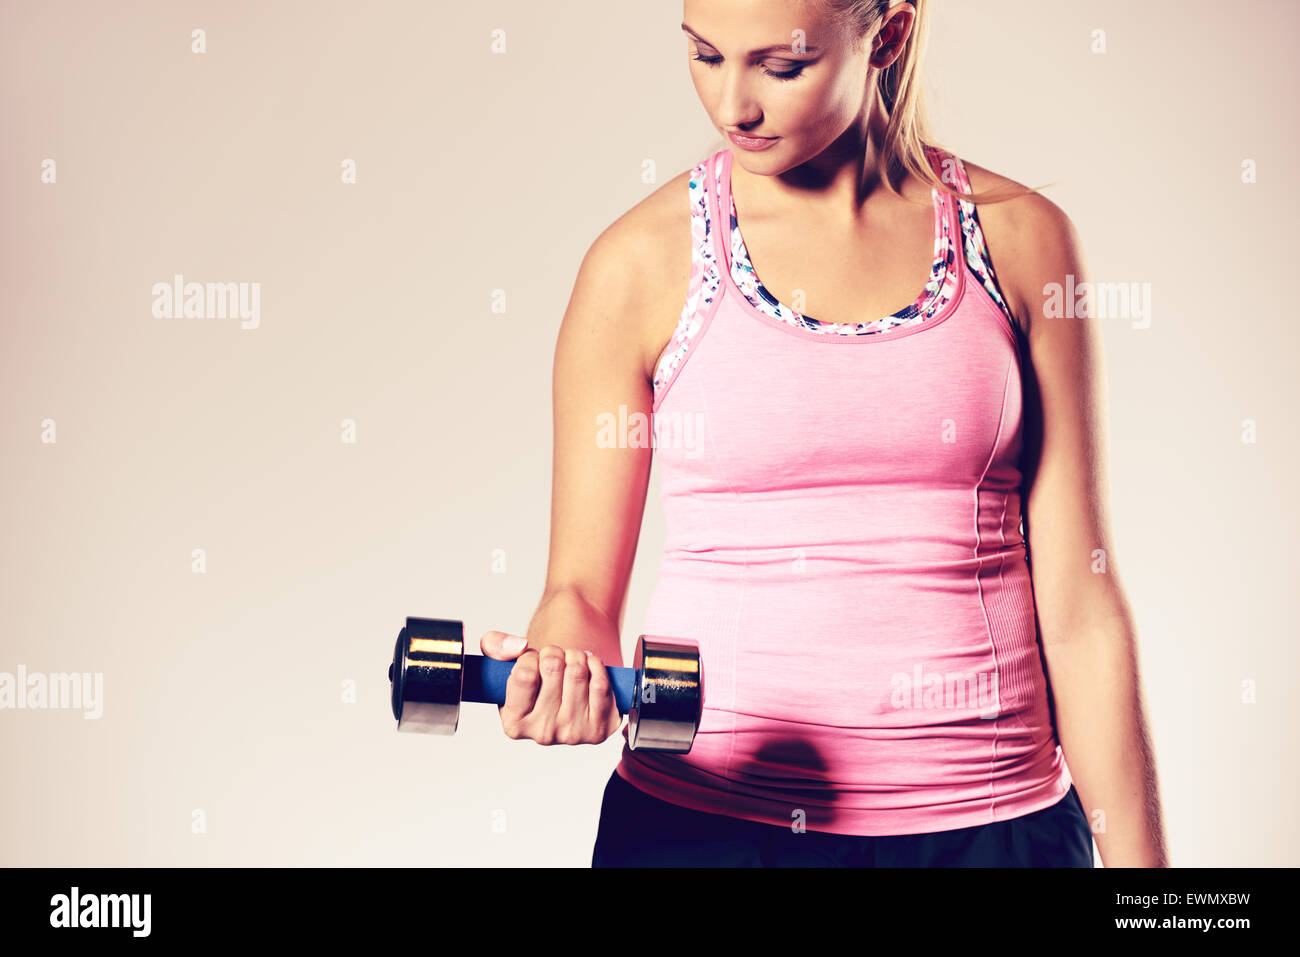 Young woman working out haut du corps, faisant un biceps curl. Photo Stock